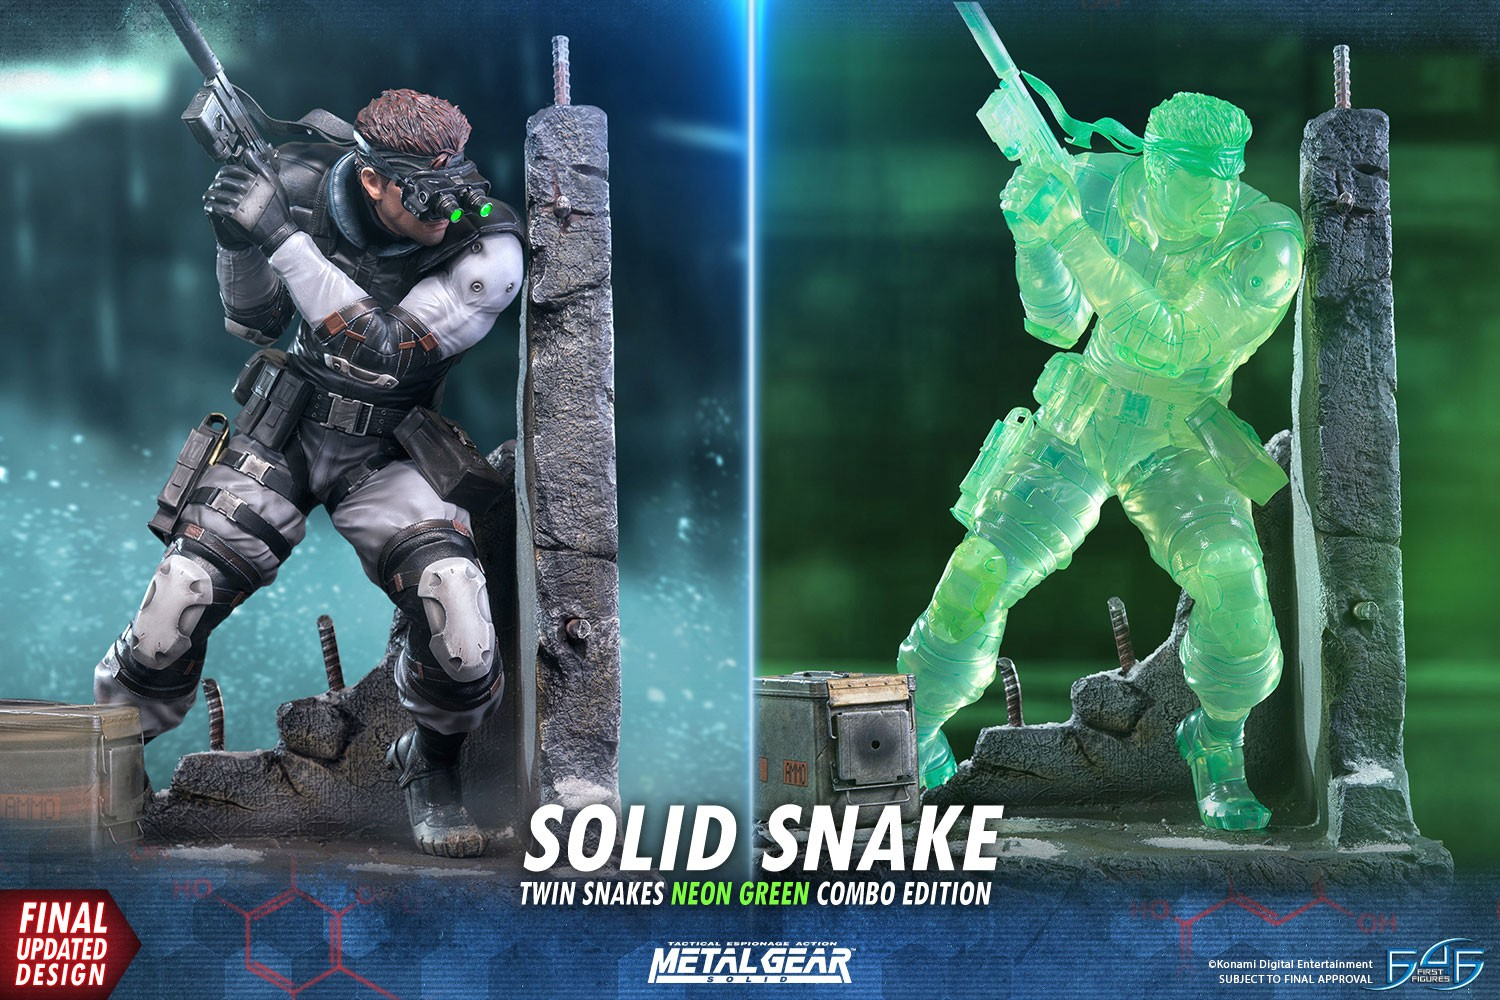 Solid Snake Twin Snakes Neon Green Combo Edition